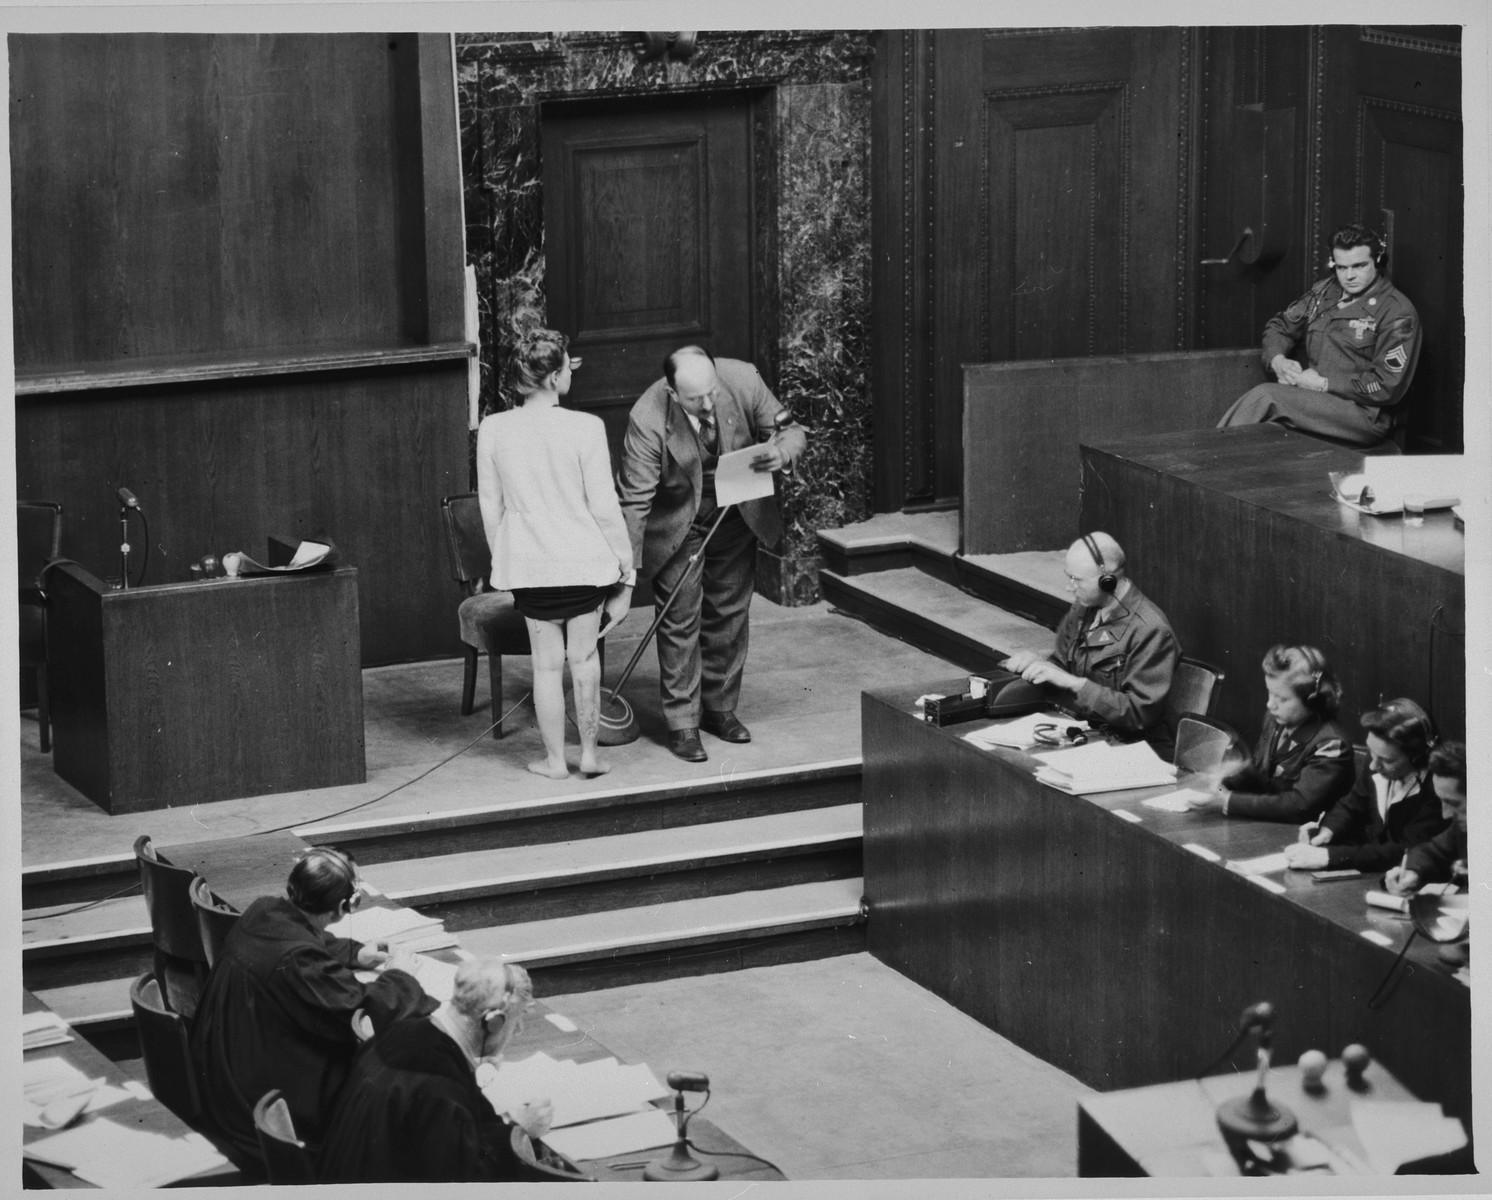 Polish survivor Jadwiga Dzido shows her scarred leg to the court, while expert witness Dr. Alexander explains the nature of the medical experiment performed on her in the Ravensbrueck concentration camp.  Dzido and Alexander were appearing as witnesses at the Doctors Trial.  Dzido was subjected to sulfanilamide and bone experiments performed by defendants Herta Oberheuser and Fritz Ernst Fischer, on November 22, 1942.